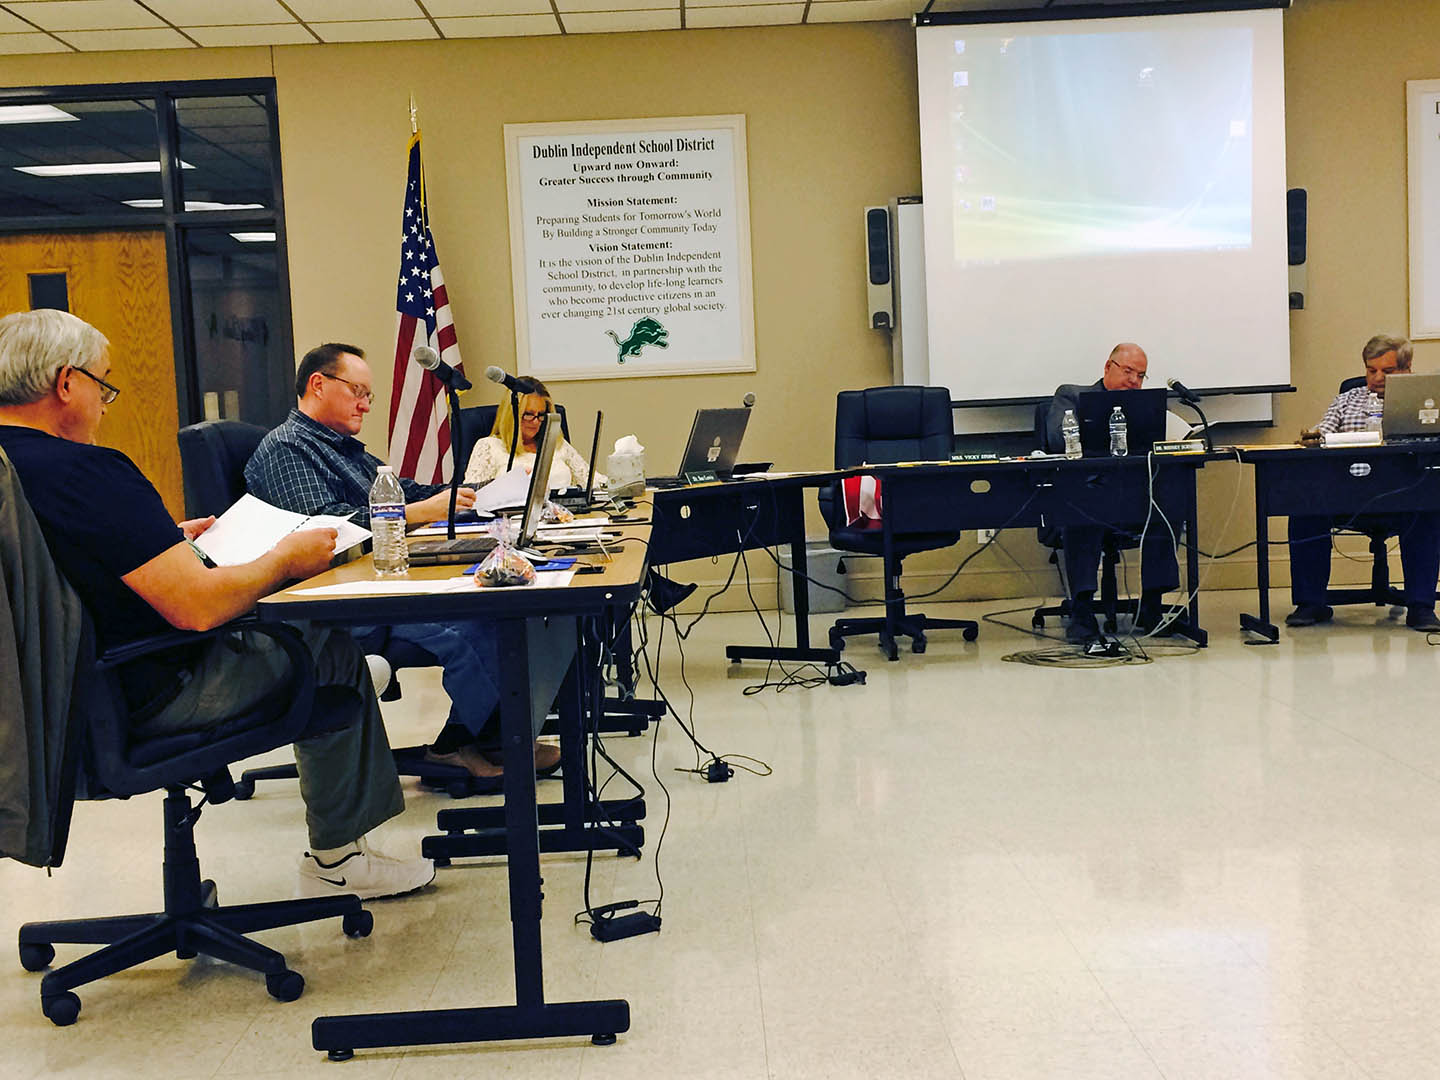 Dublin ISD evaluated Superintendent Dr. Rodney Schneider Monday night. The superintendent received a one-year contract extension. || JESSIE HORTON photo